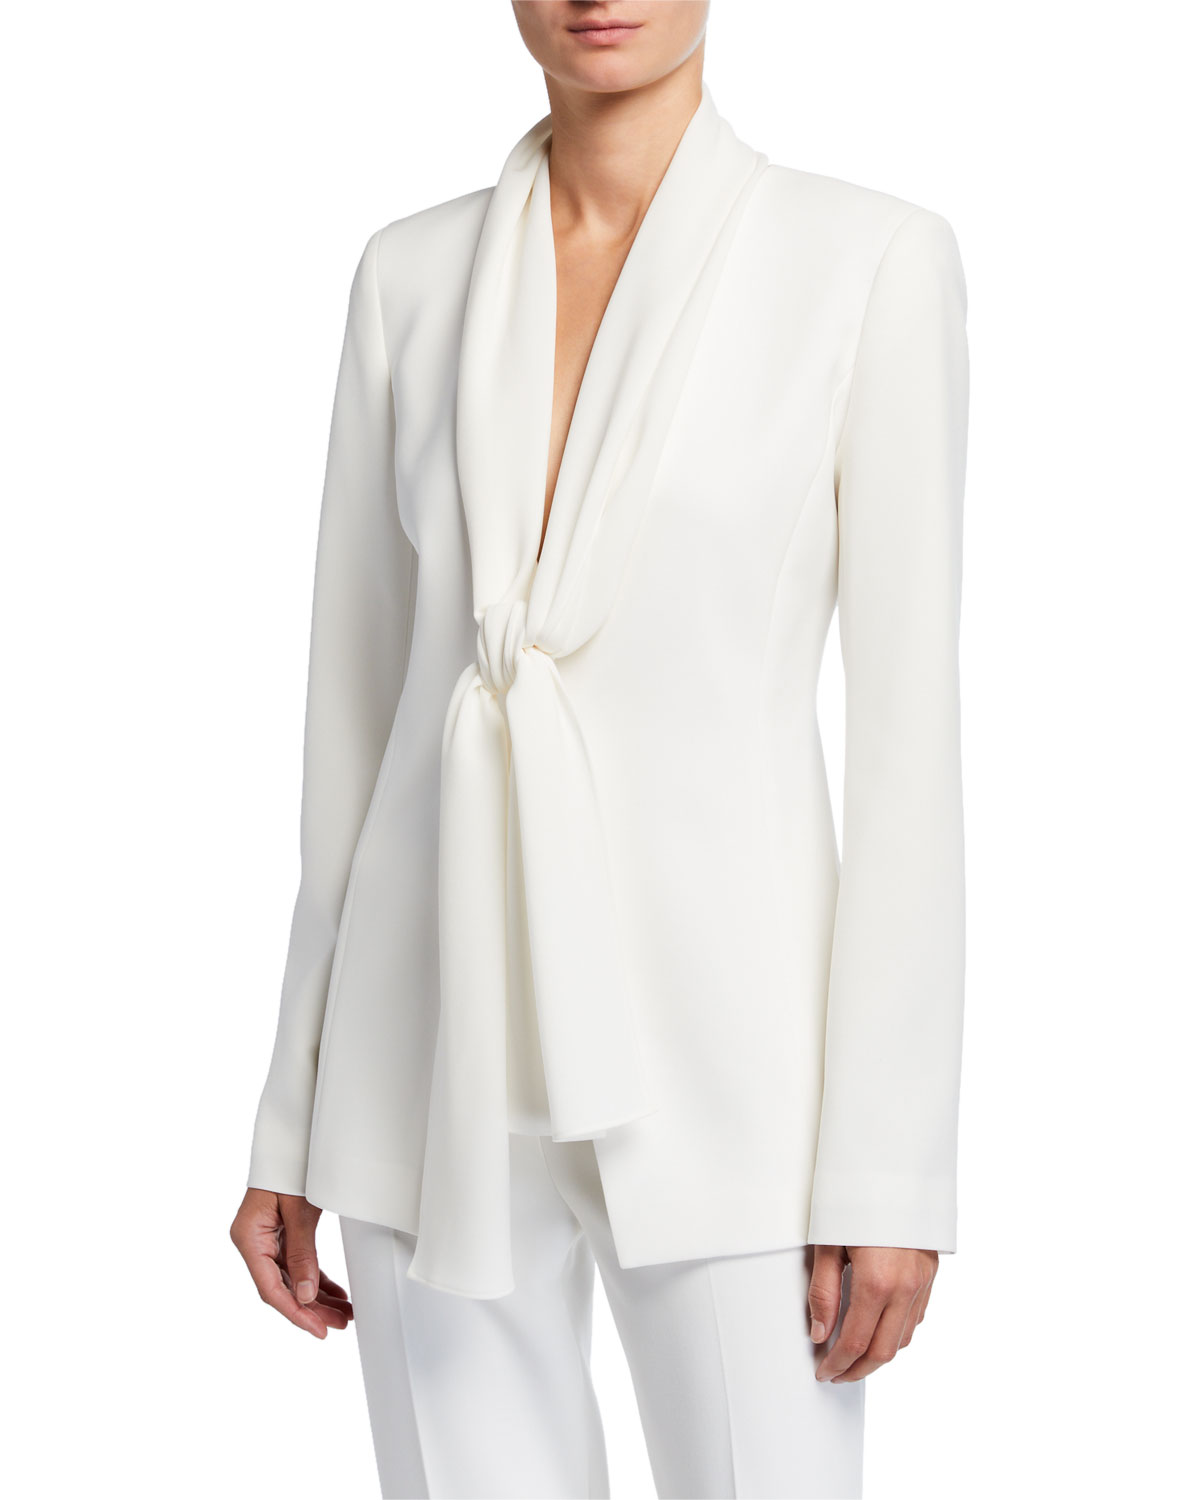 Lafayette 148 Jackets KENDRIA CREPE JACKET WITH GEORGETTE TIE COMBO